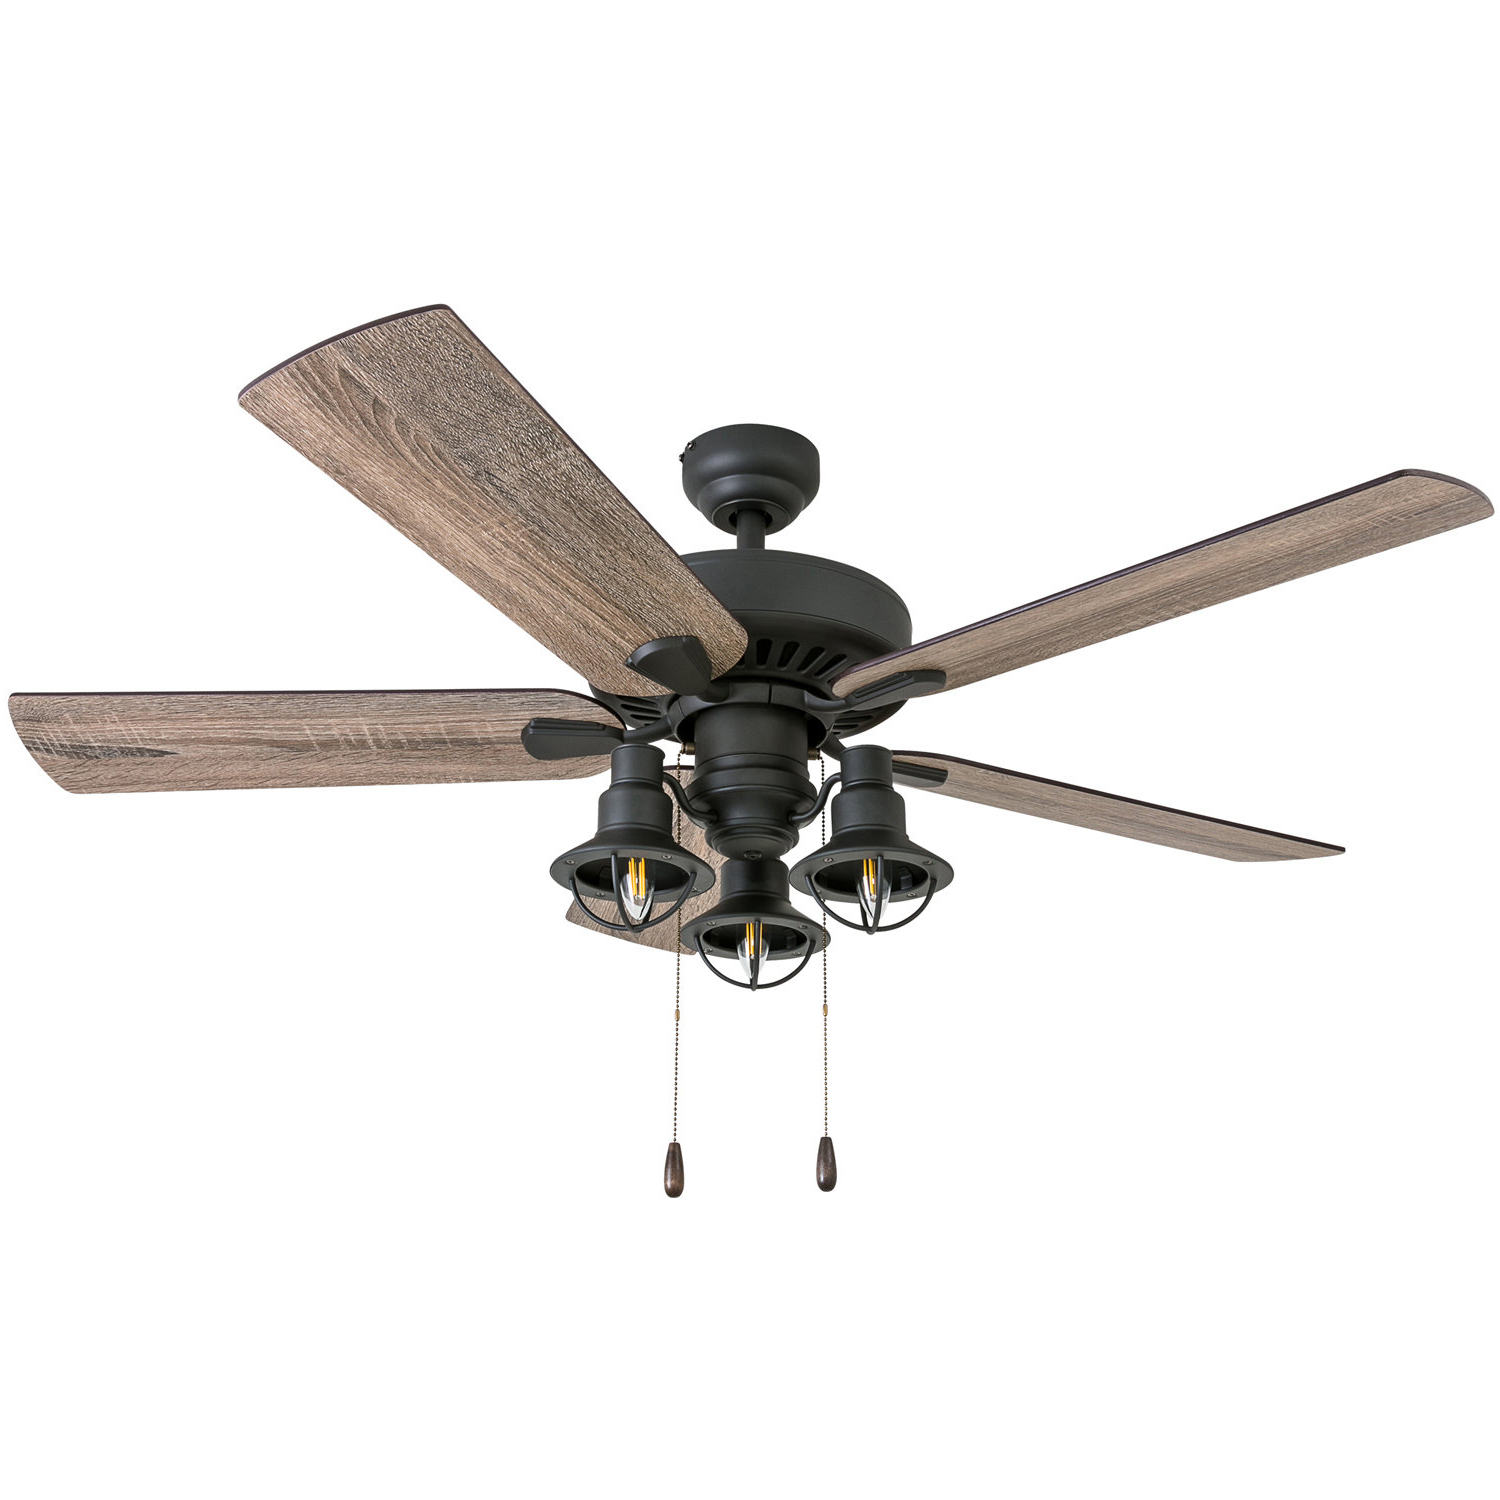 "Favorite Glenpool 5 Blade Ceiling Fans Pertaining To 52"" Ravello 5 Blade Led Ceiling Fan, Light Kit Included (View 10 of 20)"